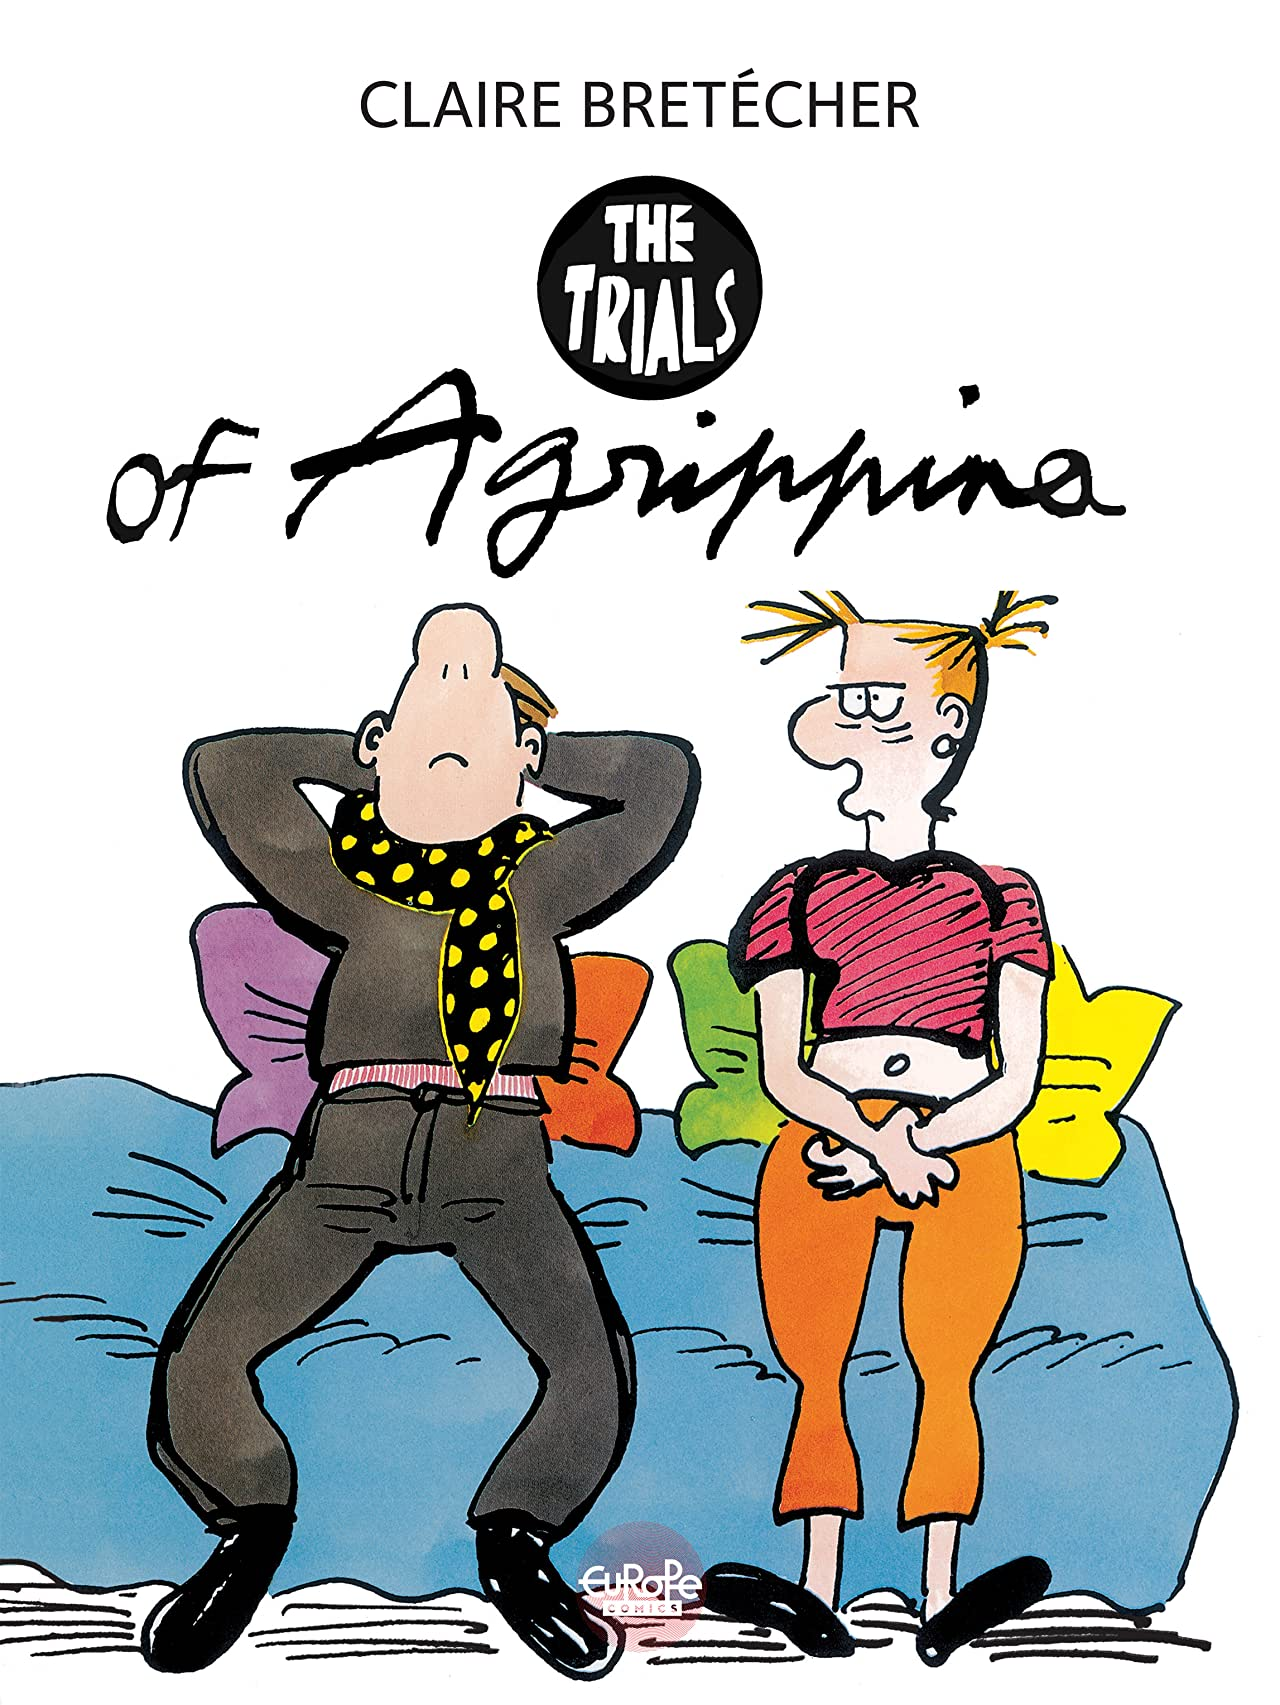 The Trials of Agrippina